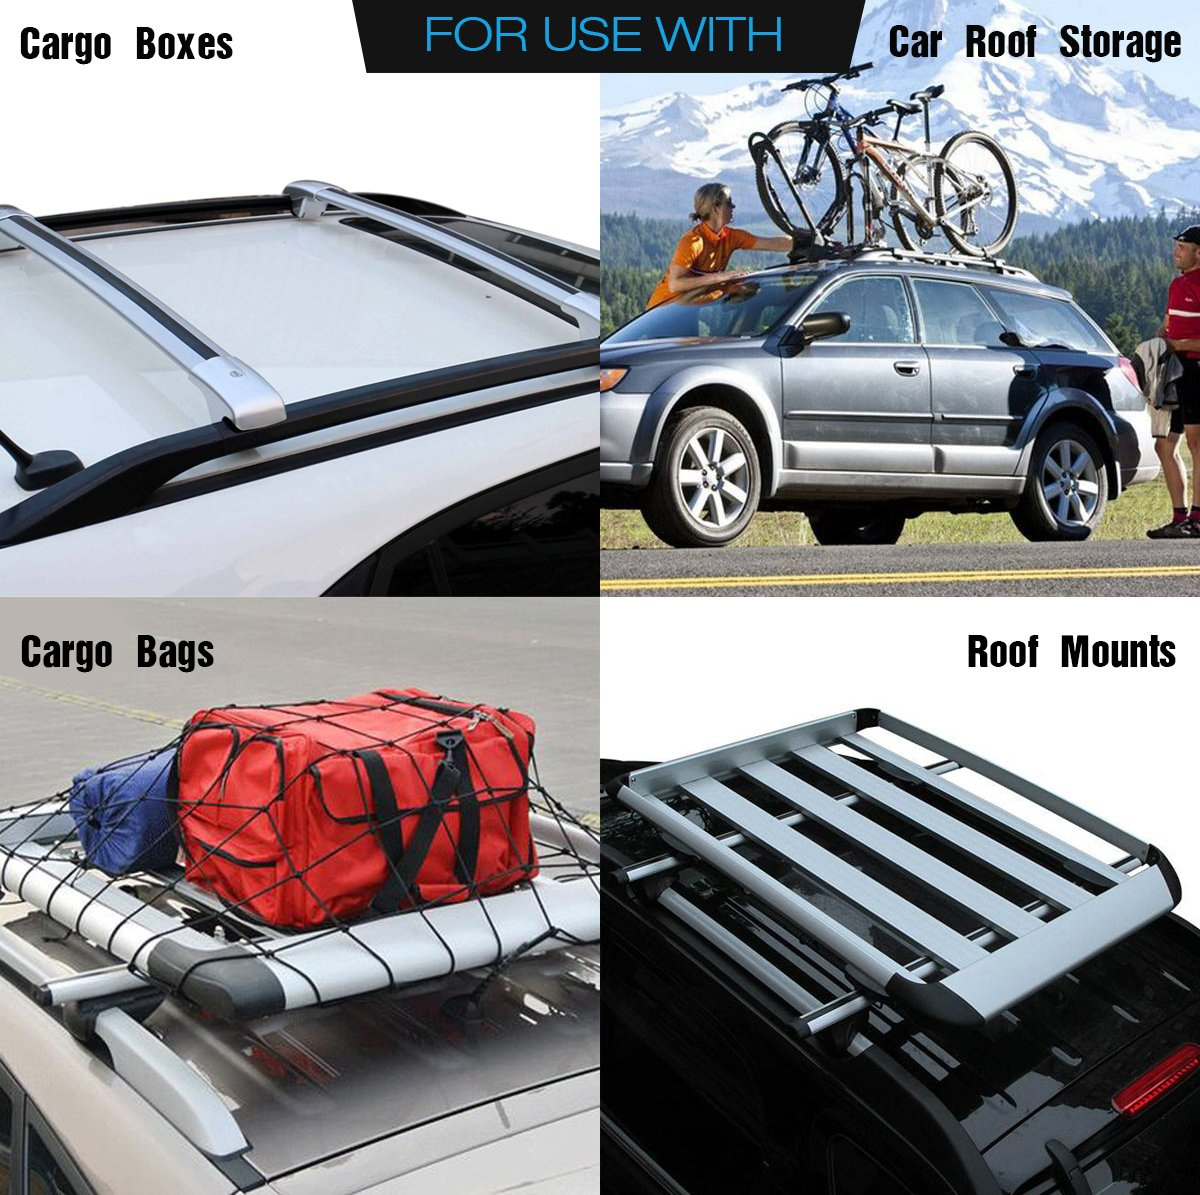 Amazon.com: CAR ROOF PROTECTIVE MAT, Siivton Roof Rack Pad Non Slip For Car Roof  Storage Bags: Automotive